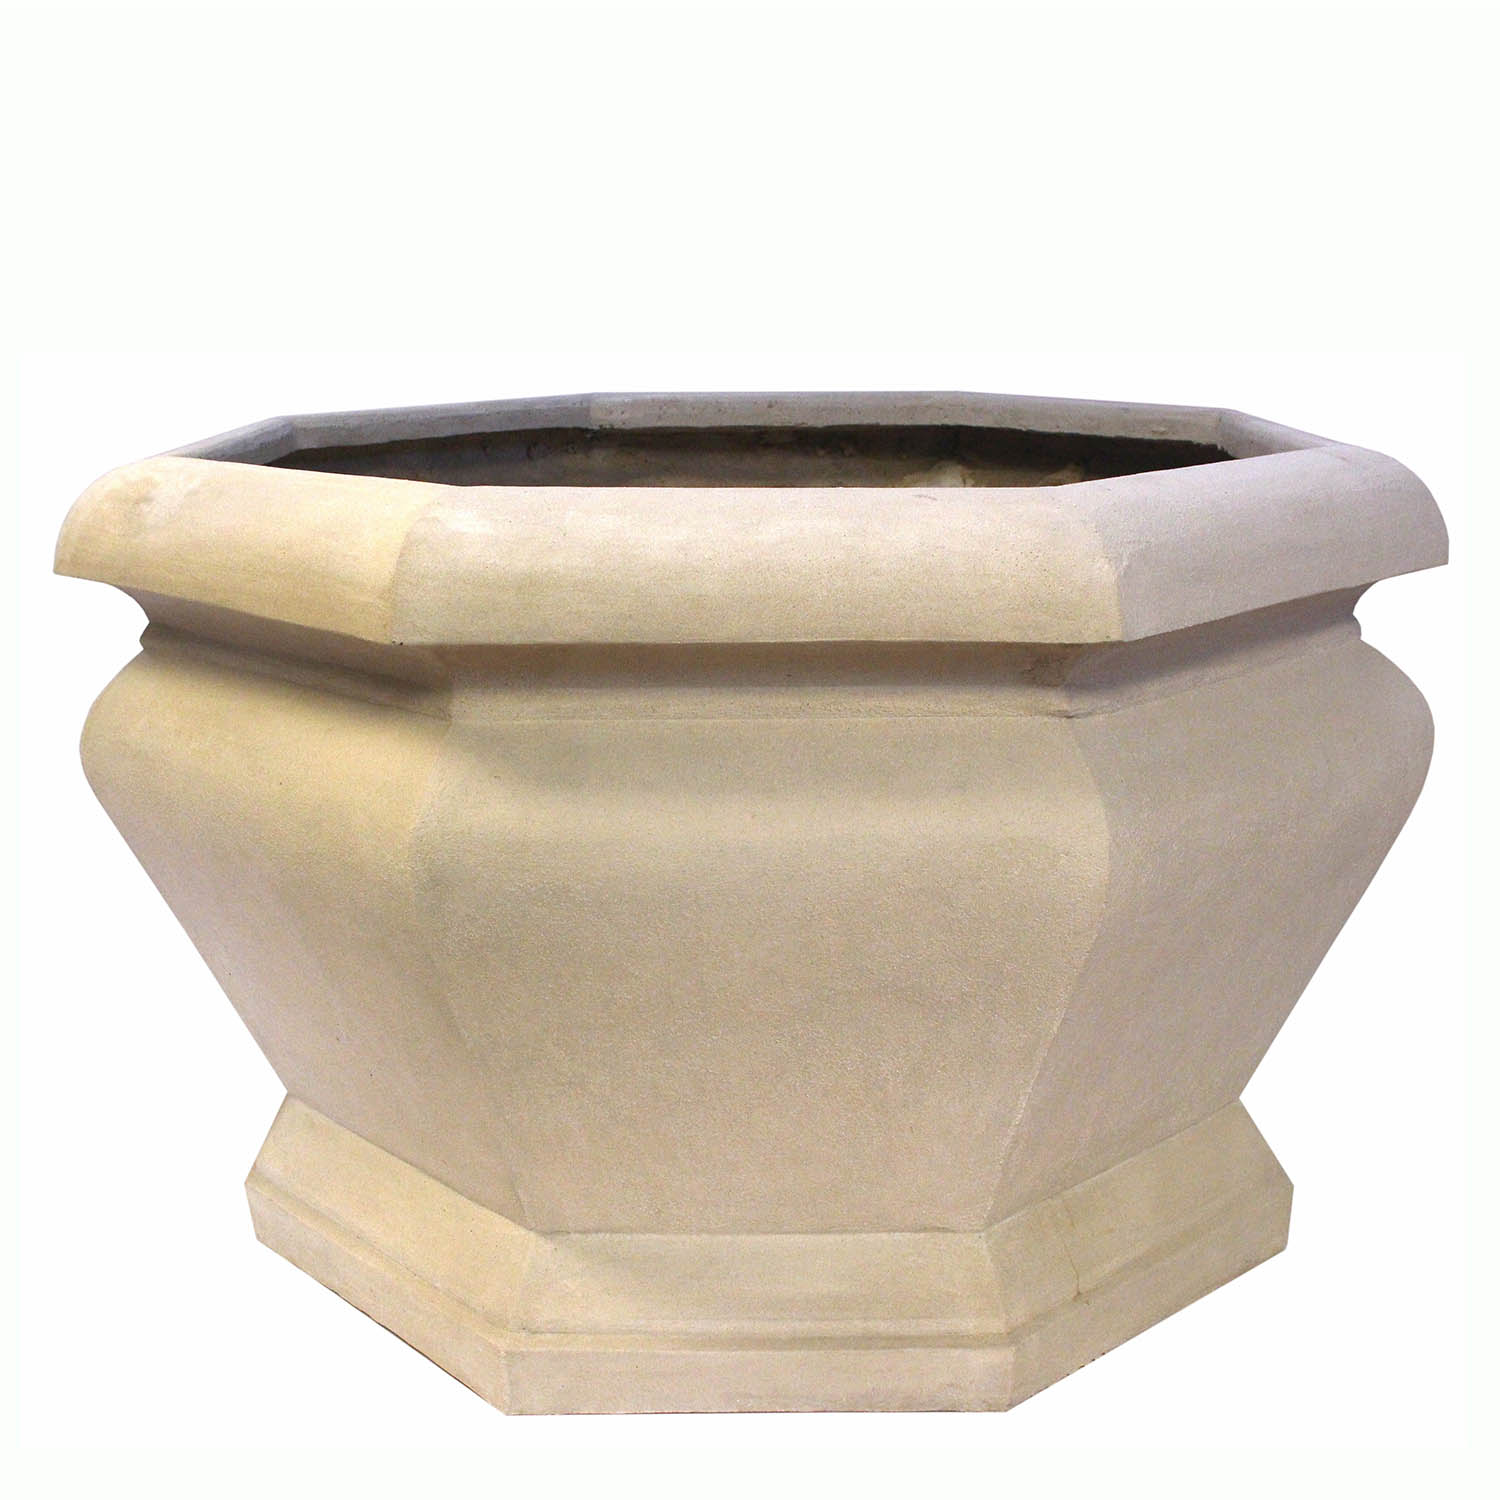 Superb-quality Jardienere Large Octagonal Cast Limestone Planter Product Photo